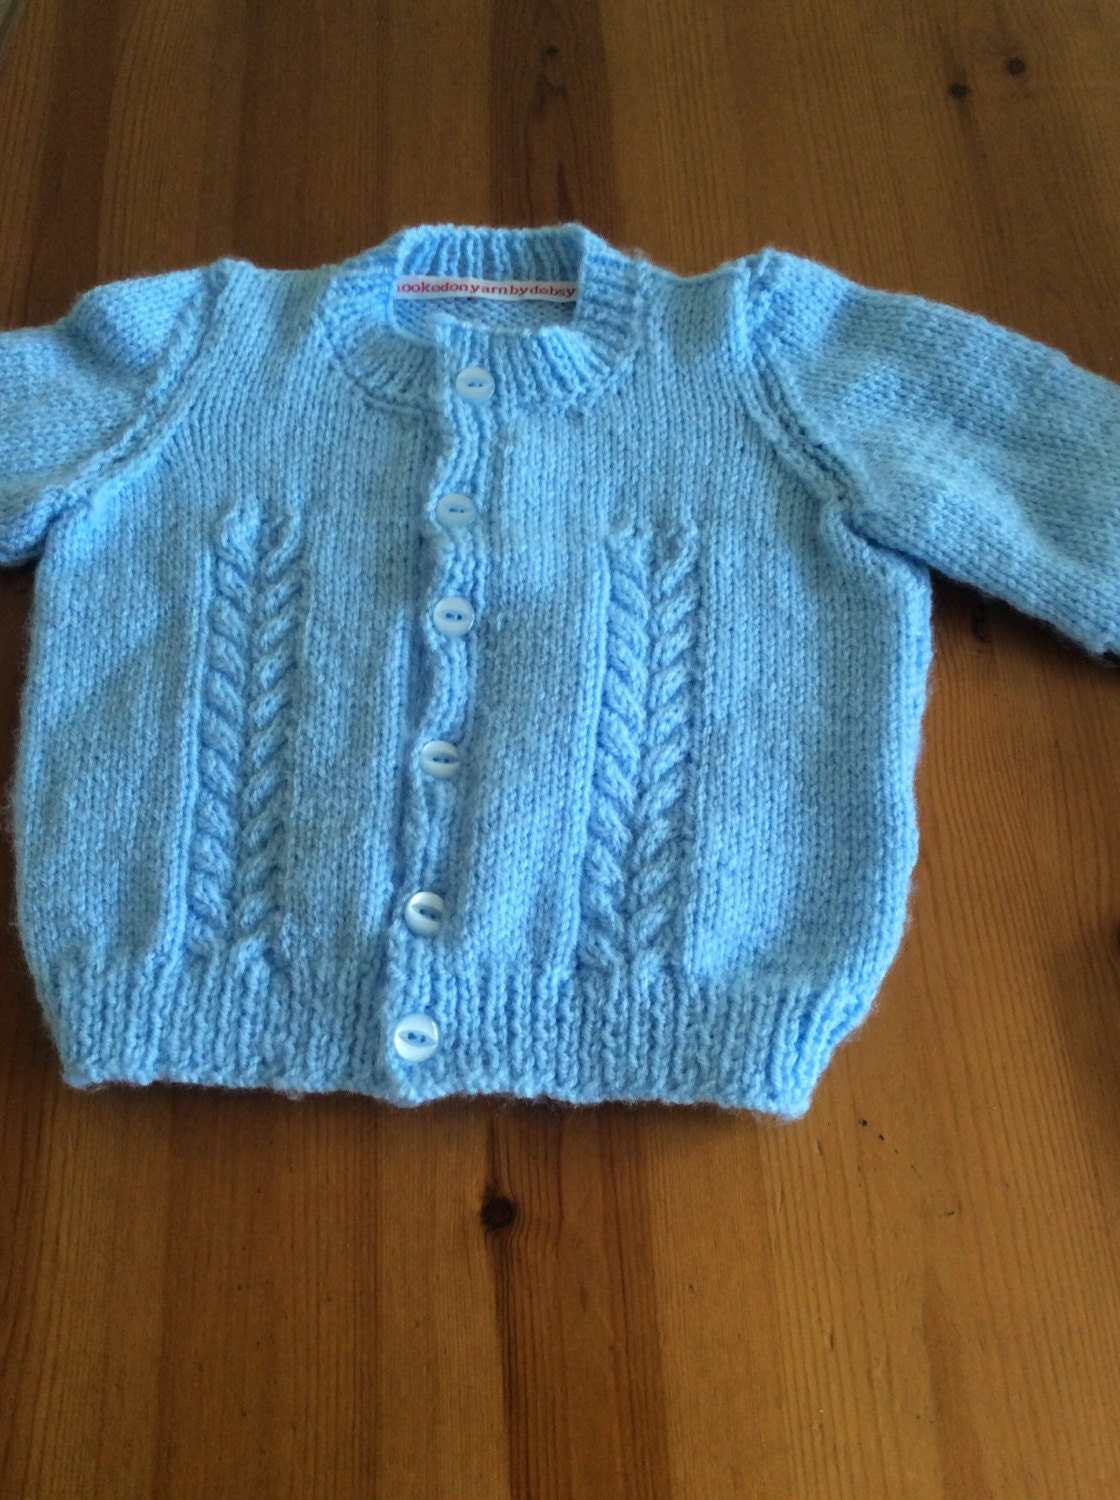 Find great deals on eBay for baby boy knitted sweater. Shop with confidence. Skip to main content. eBay: Baby Boy's Blue Set Cable Knit Sweater and Pants months. Pre-Owned. $ or Best Offer +$ shipping. Baby gap Baby Boy Sweater Size 18/24 Months Striped Chunky Knit .